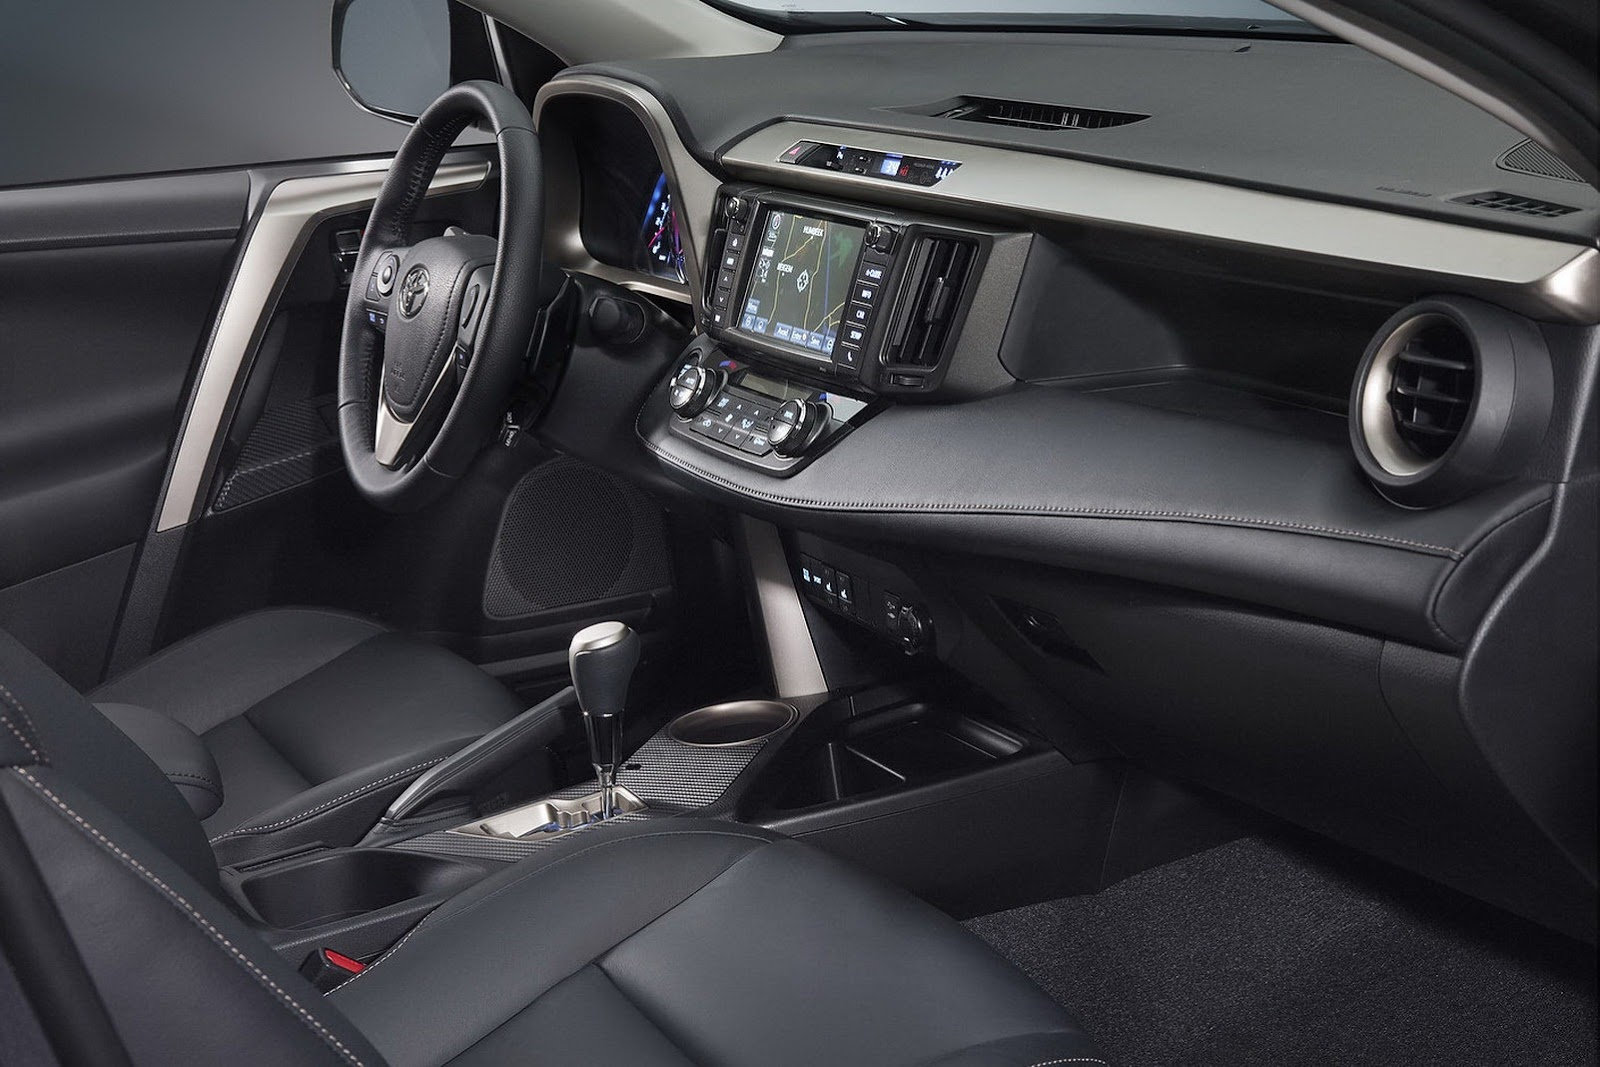 2013 Toyota Rav4 On Sale Date And Pricing Announced